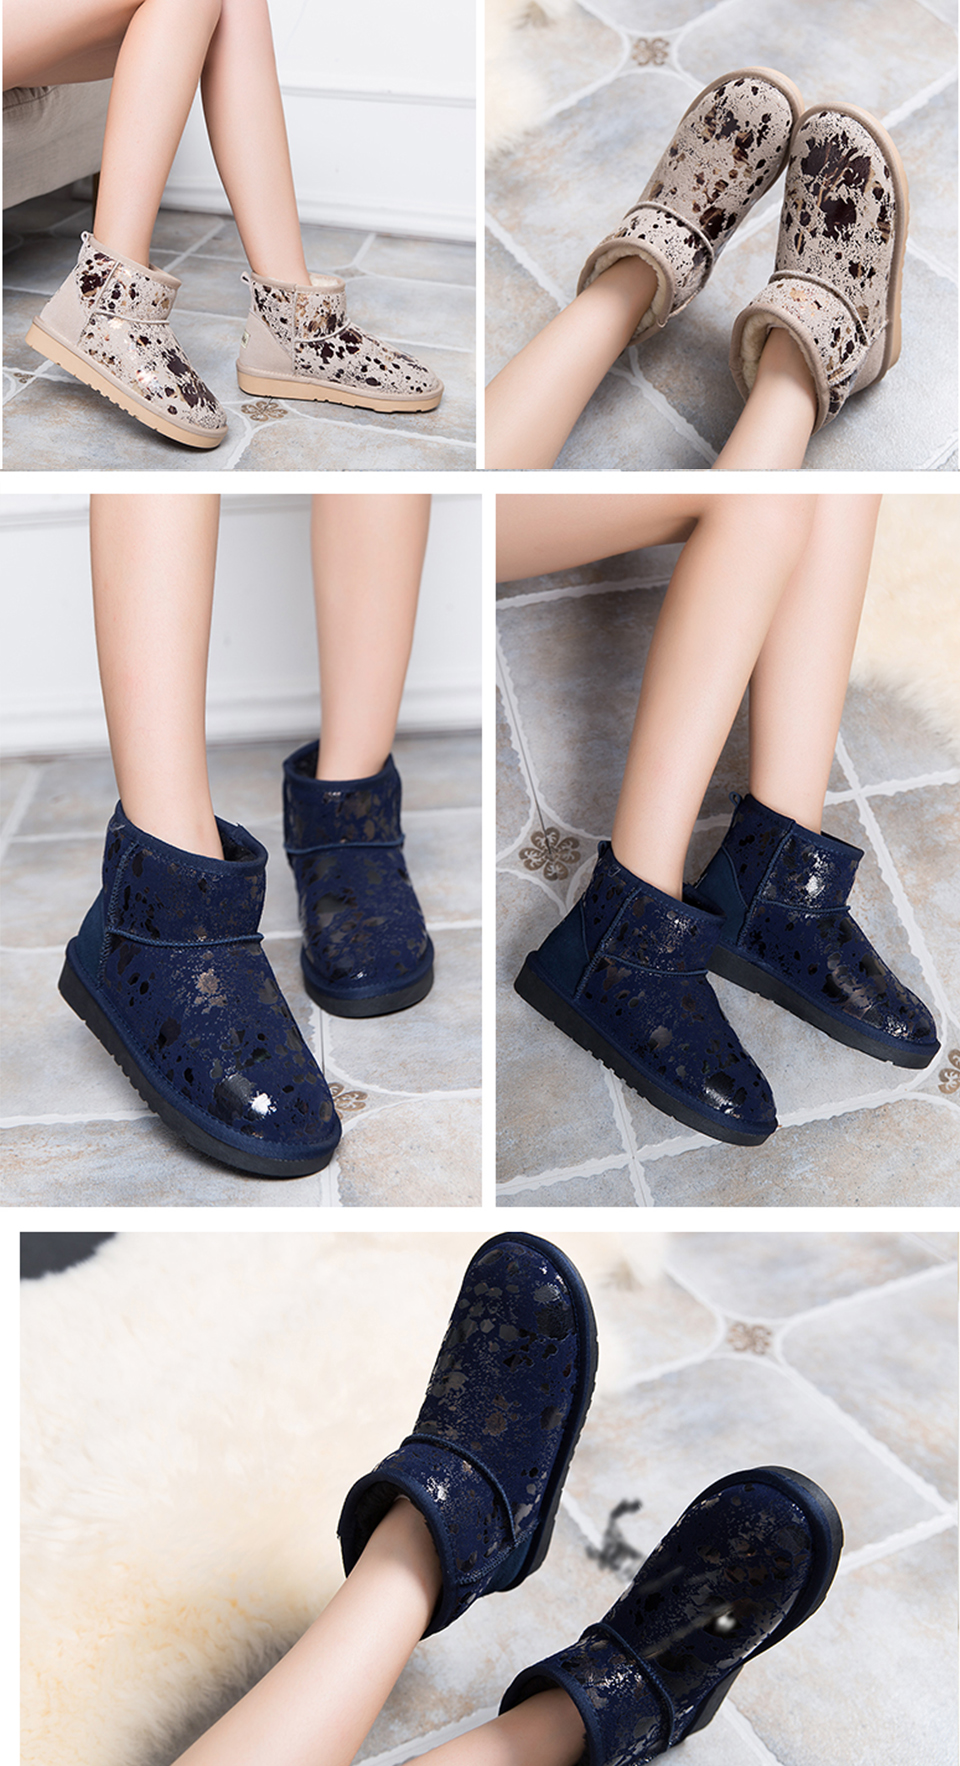 5 ankle boots